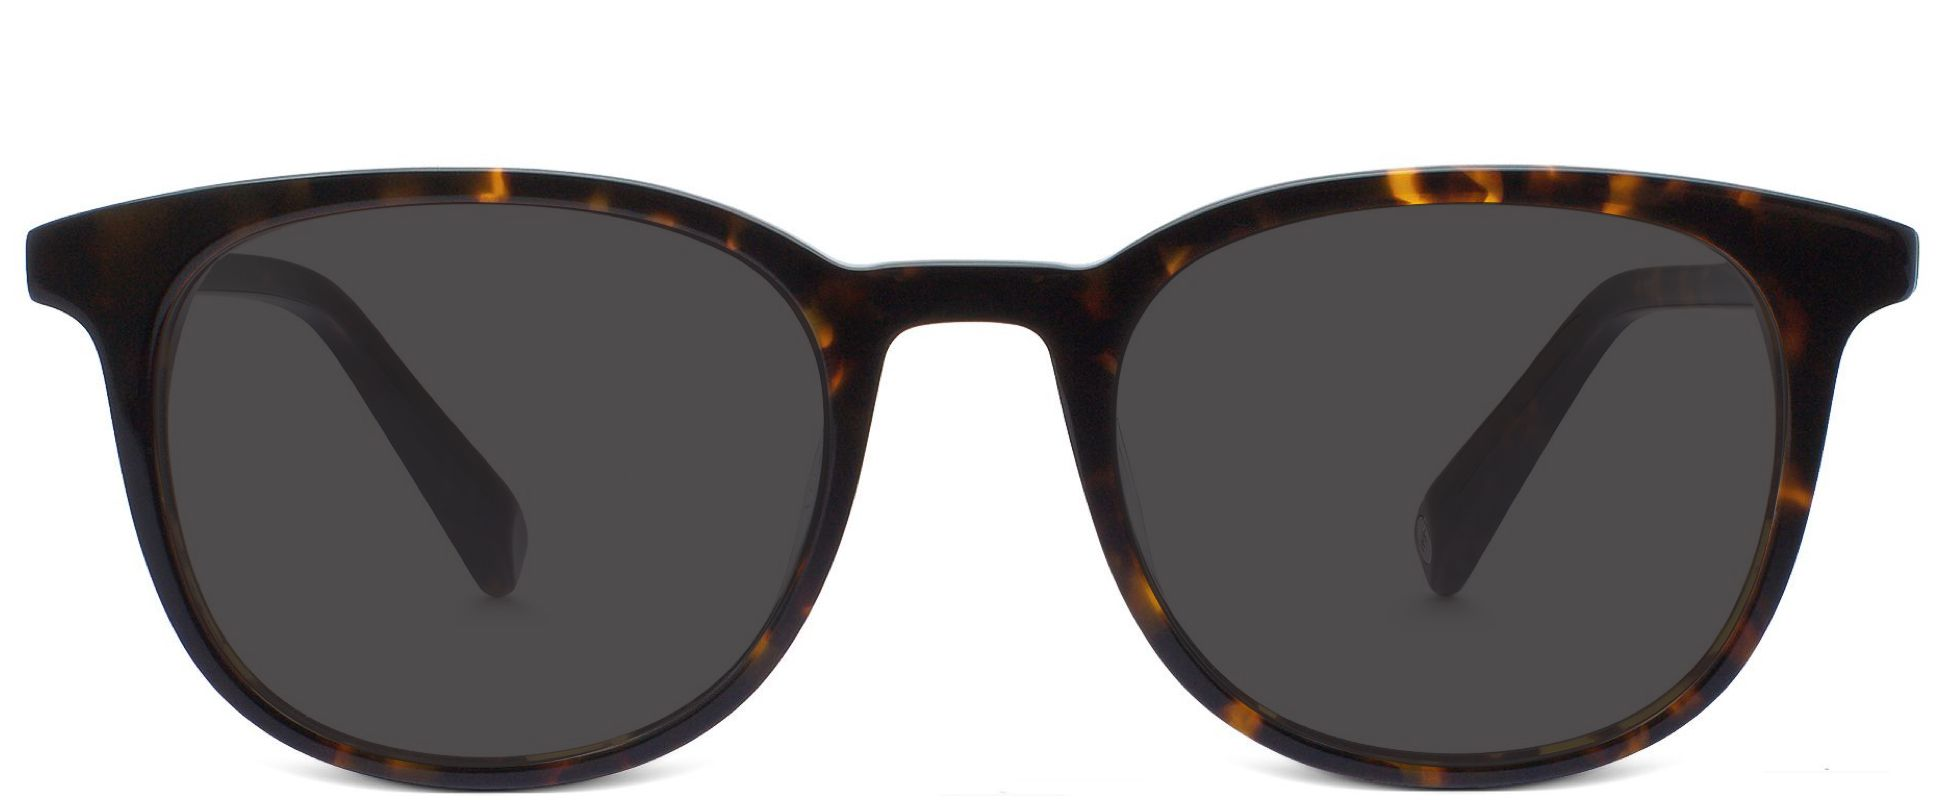 Durand in Whiskey Tortoise showing dark lenses in outdoor setting